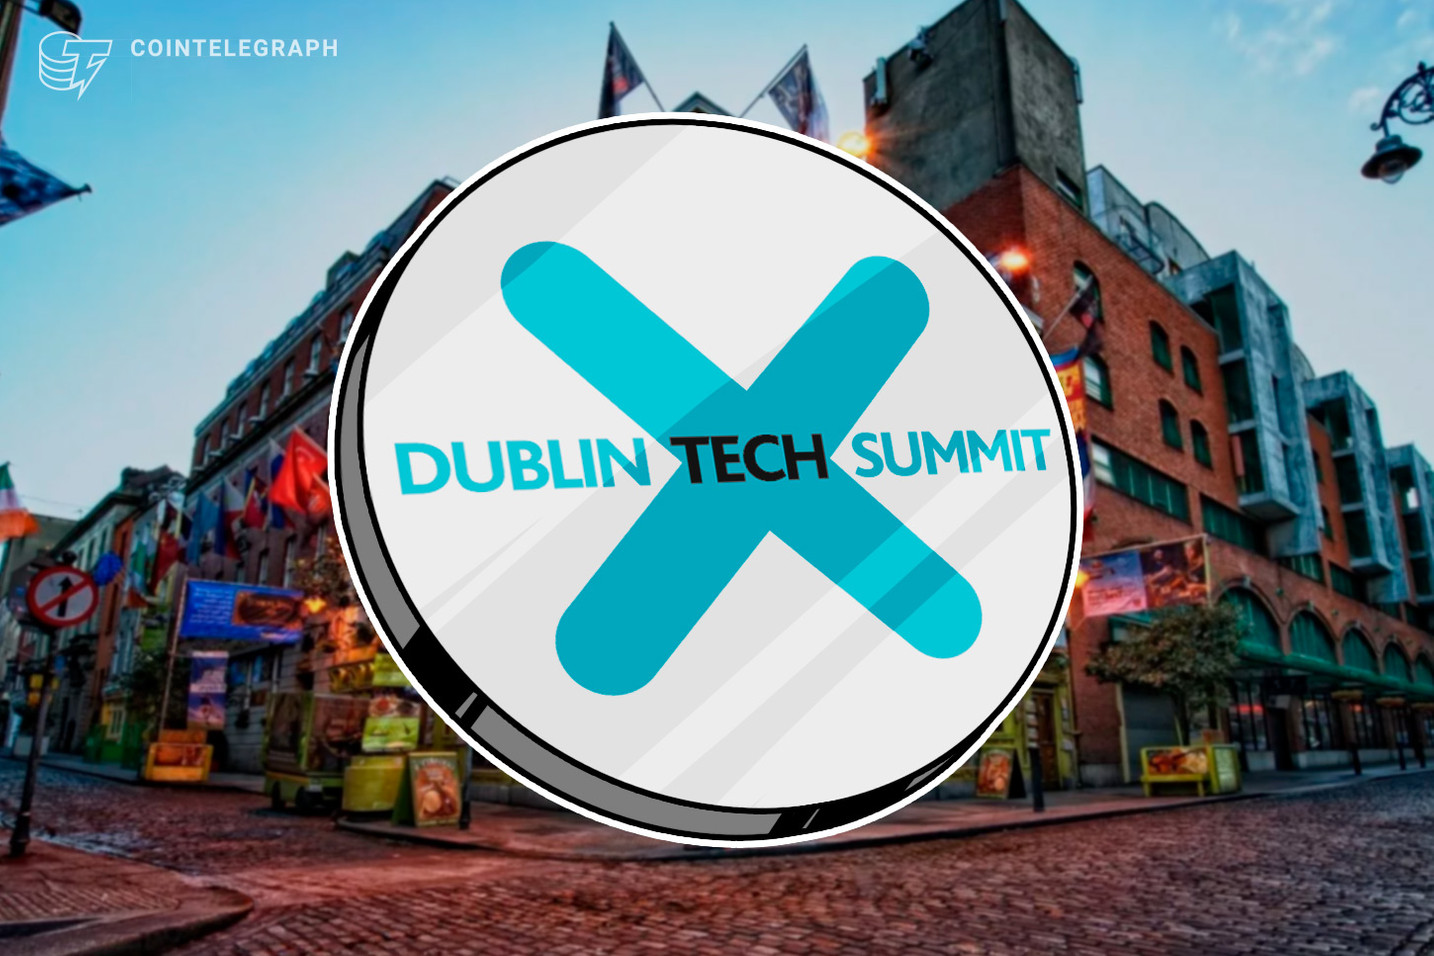 Dublin Tech Summit Returns this April for its Third Year